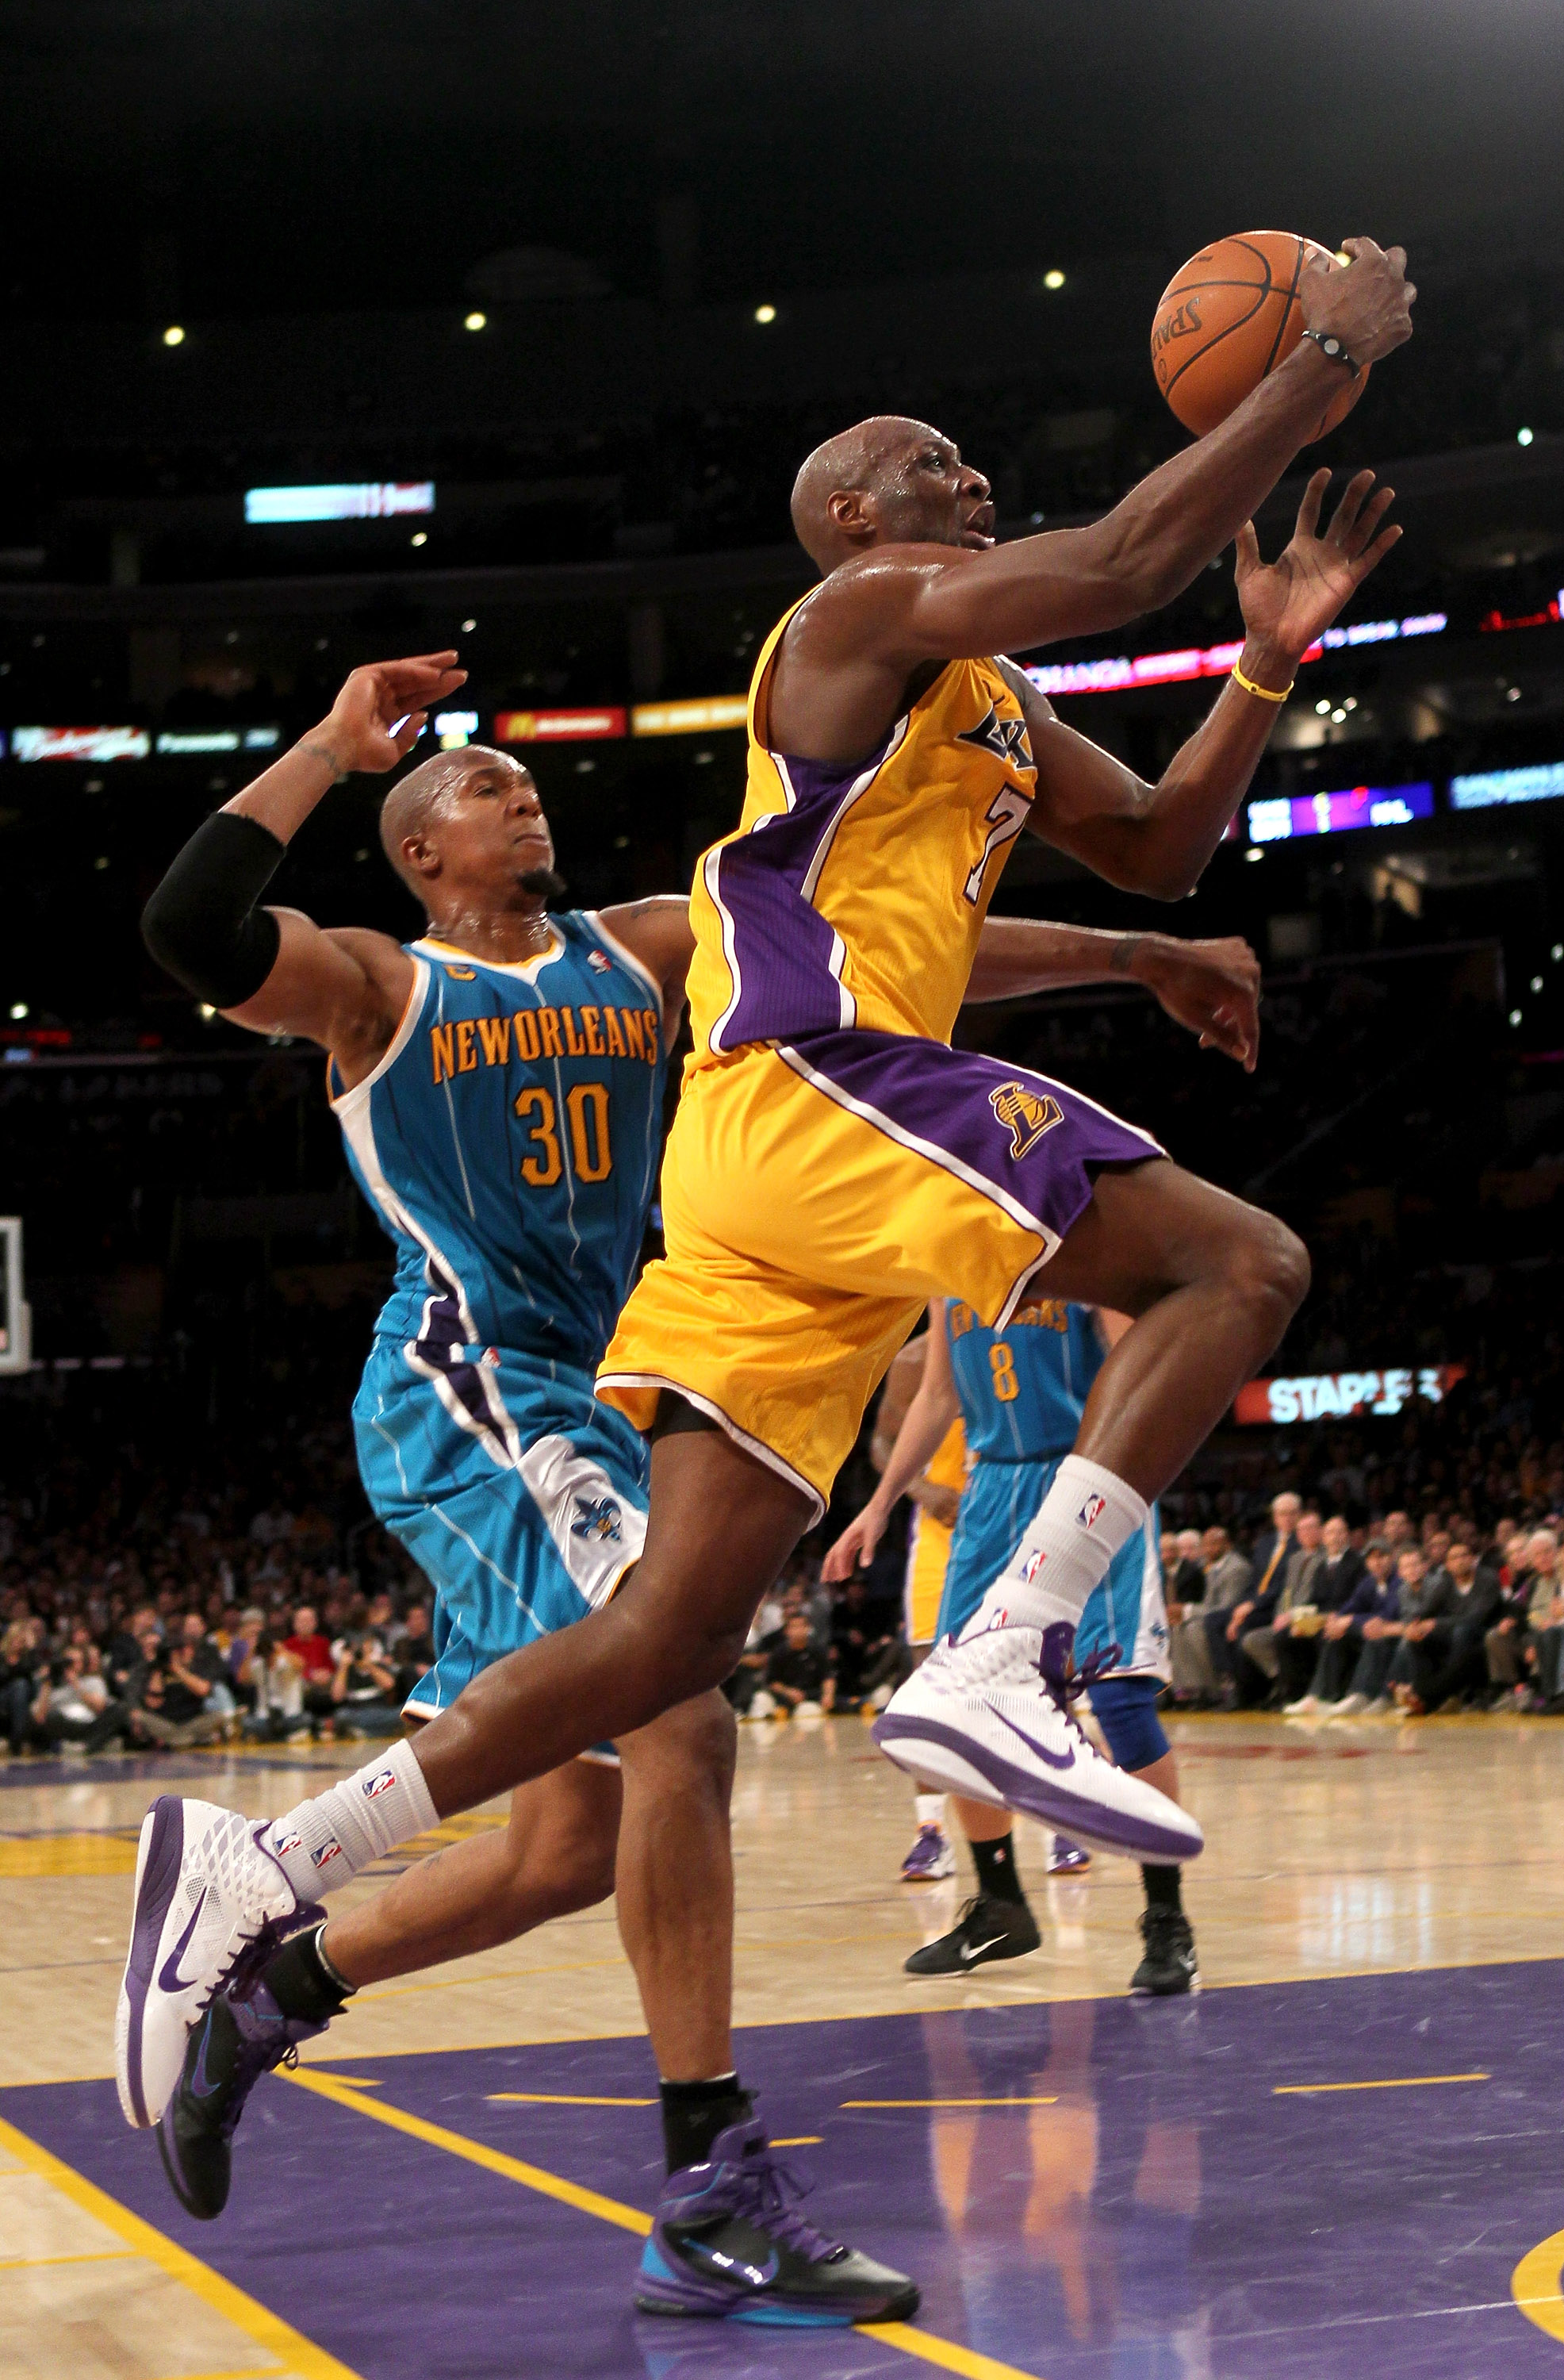 LOS ANGELES, CA - JANUARY 07:  Lamar Odom #7 of the Los Angeles Lakers goes up for a shot past David West #30 of the New Orleans Hornets at Staples Center on January 7, 2011 in Los Angeles, California.  The Lakers won 101-97.  NOTE TO USER: User expressly